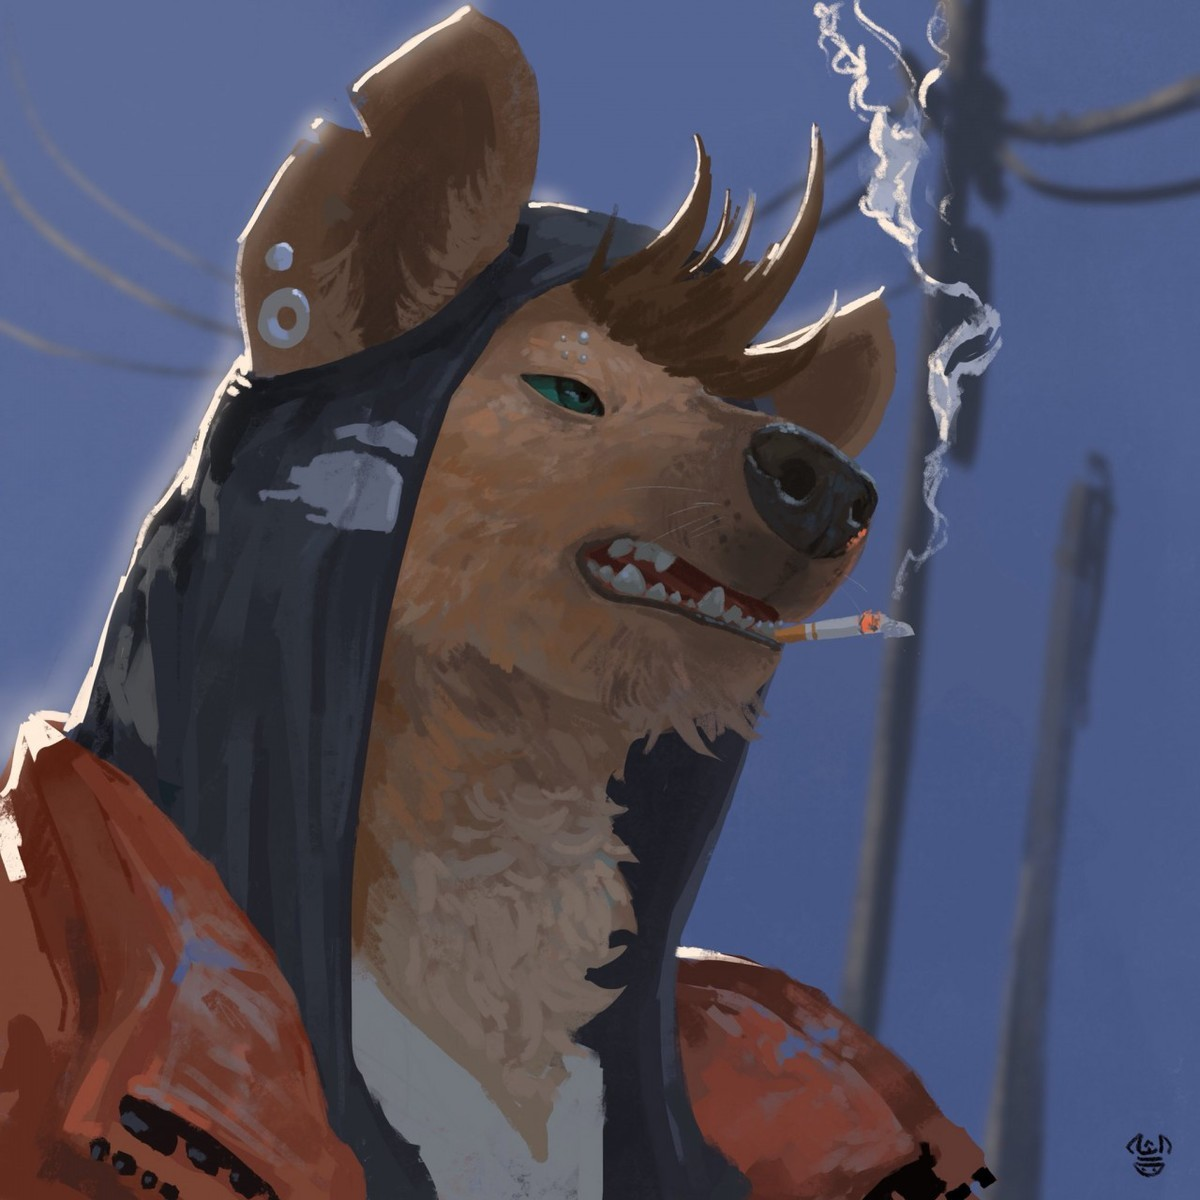 NeungSoNie . Edition 131 of Furry Art You Could Show Your Friends. Today's featured artist is Jae Pil Lee, aka NeungSoNie, a Korean painter. He